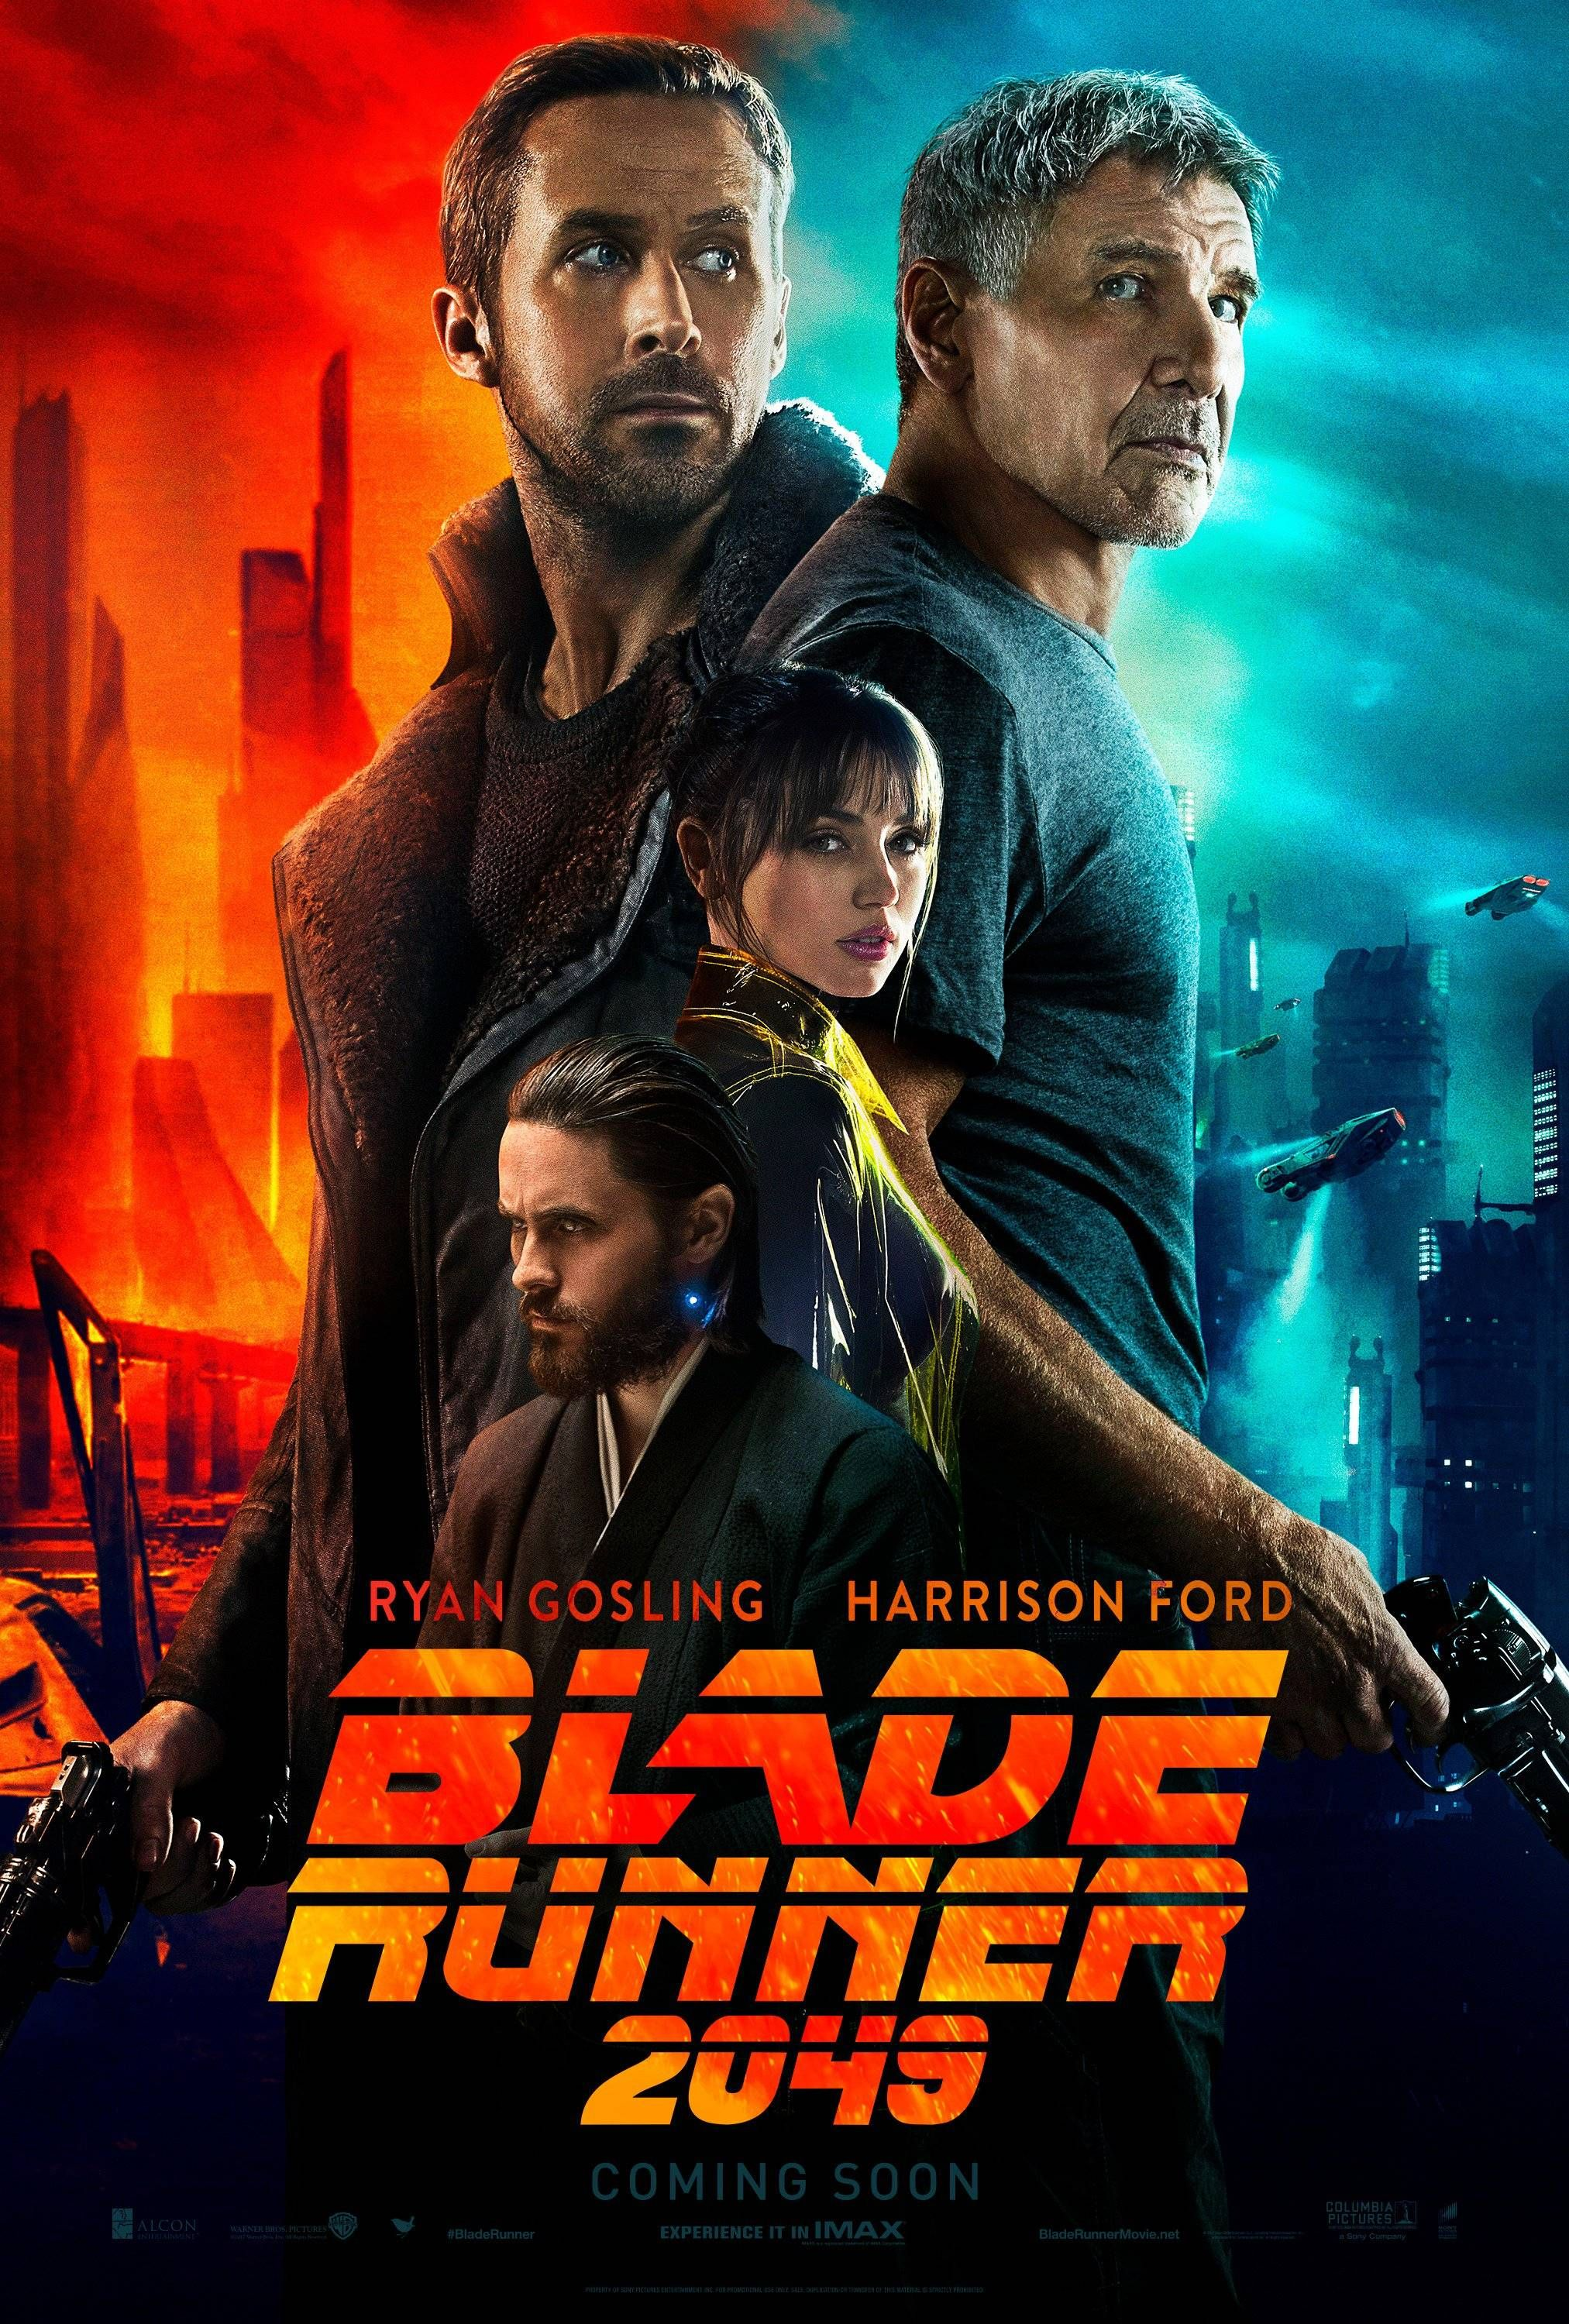 New \'Blade Runner 2049\' International Poster | Movies/Tv shows ...